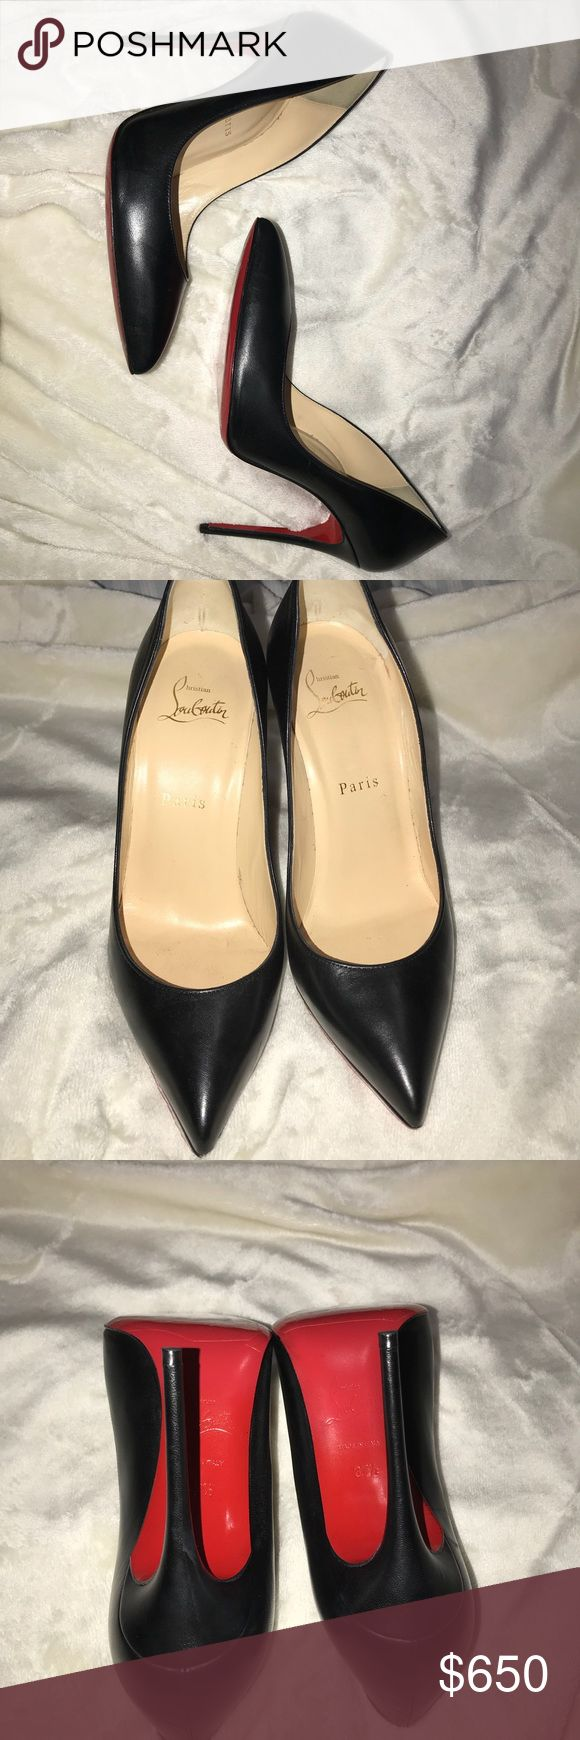 Pigalle Follies Black Worn twice. Heels are repaired and with sole protector. They are basically brand new. Christian Louboutin Shoes Heels